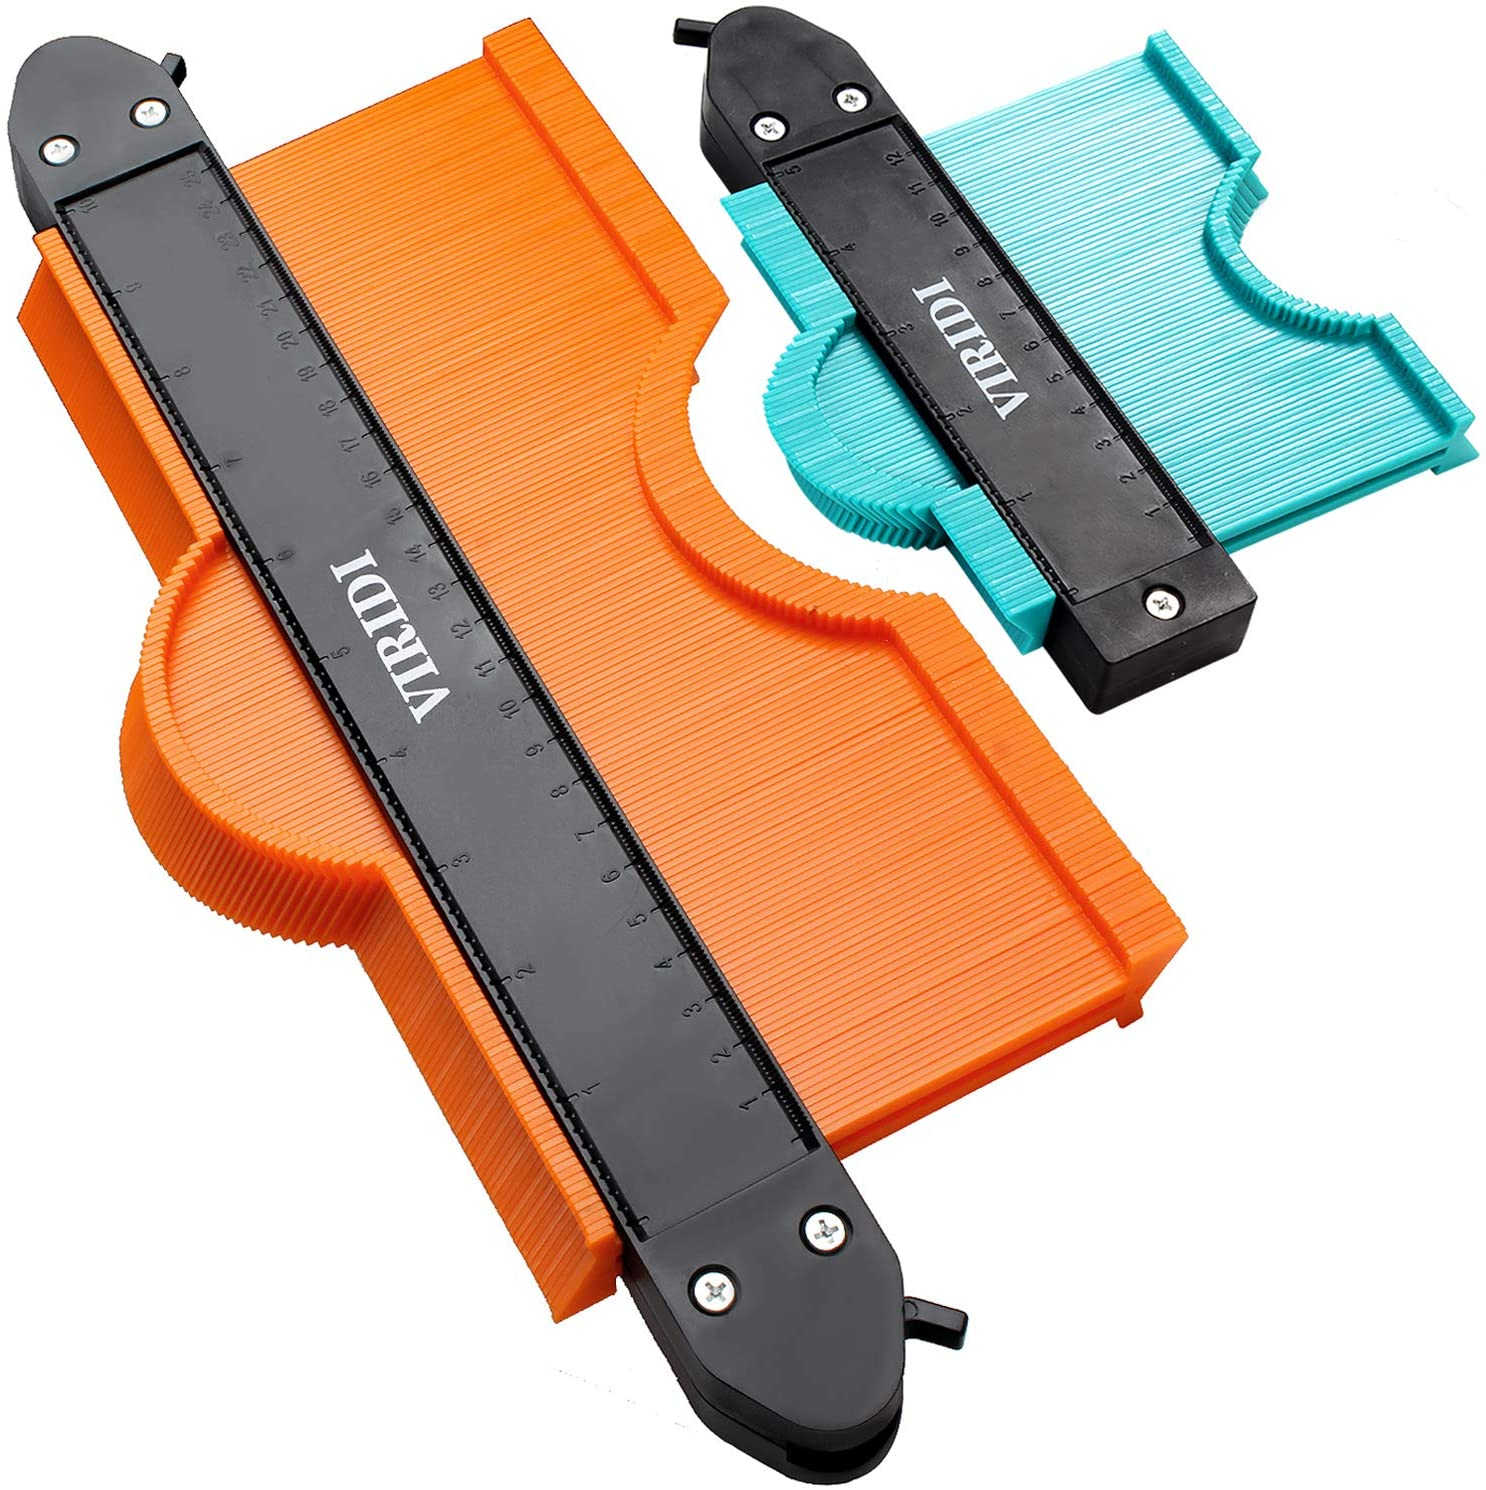 2 Pack Precisely Copy Irregular Shape Duplicator Profile Tool for Professional Measurement Wood Flooring Contour Gauge with Lock Pipes Tiles 5 inch /& 10 inch